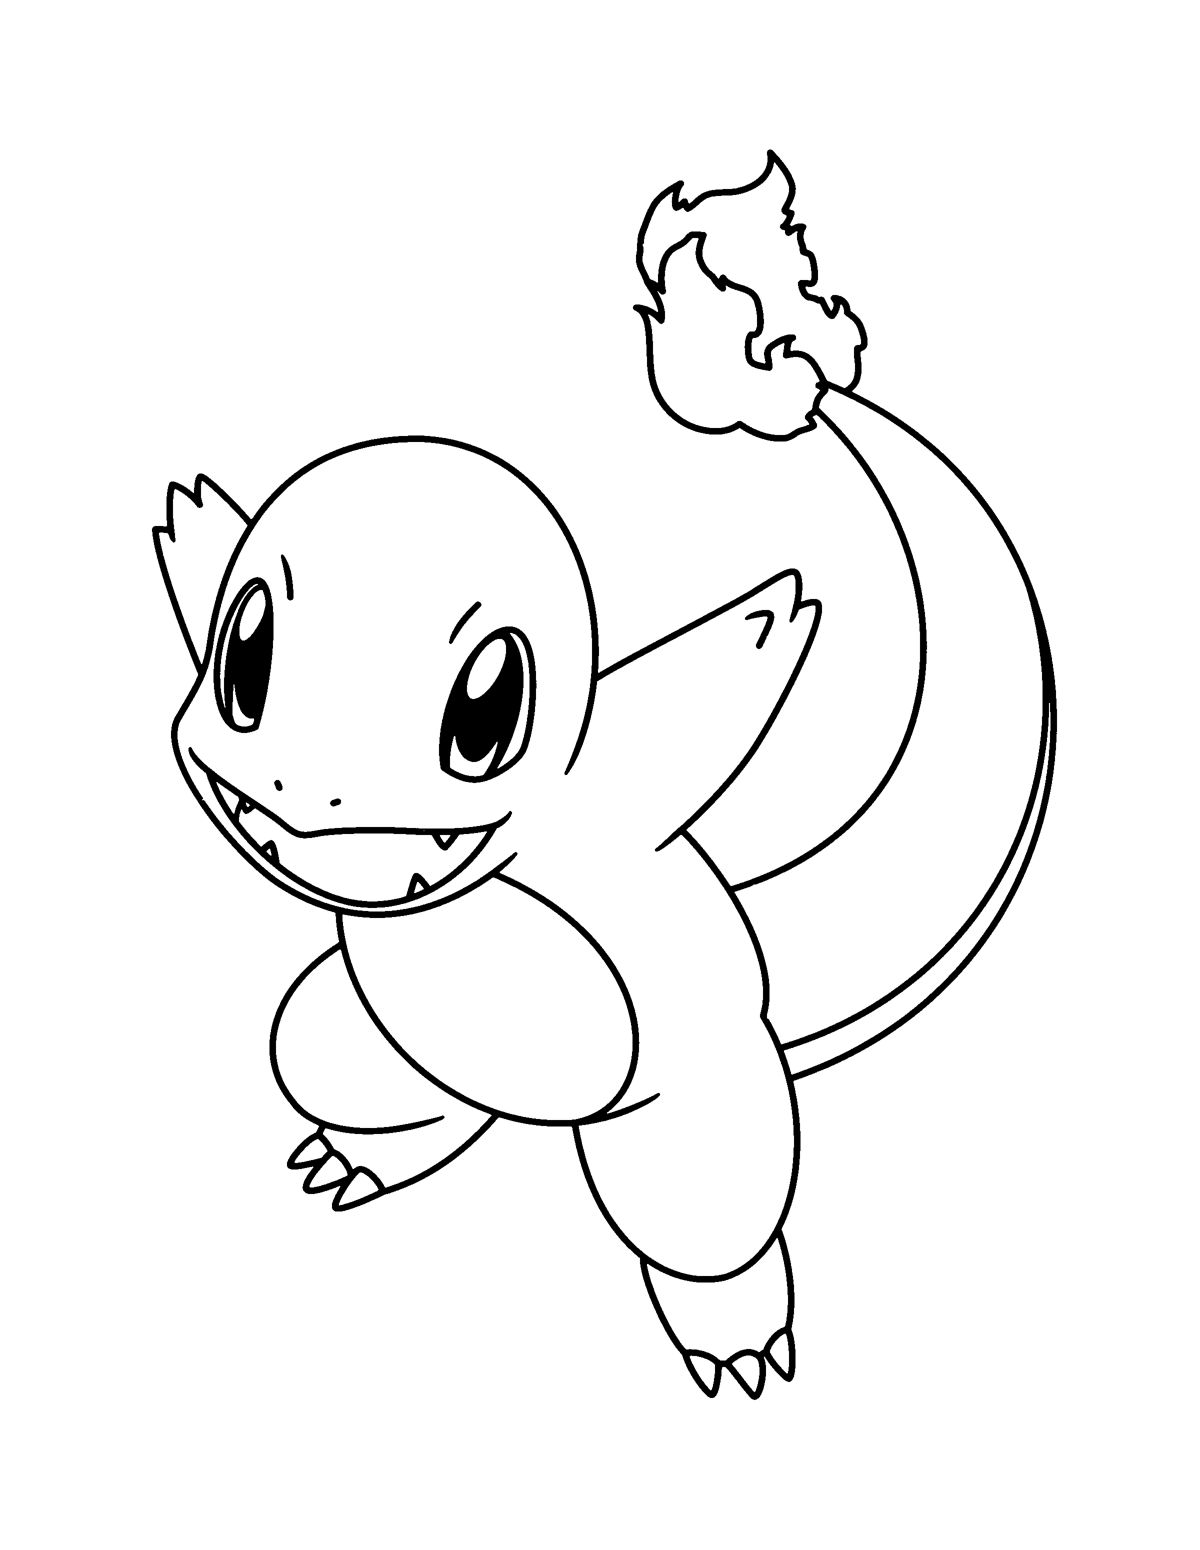 Charmander And Charizard Pokemon Coloring Page